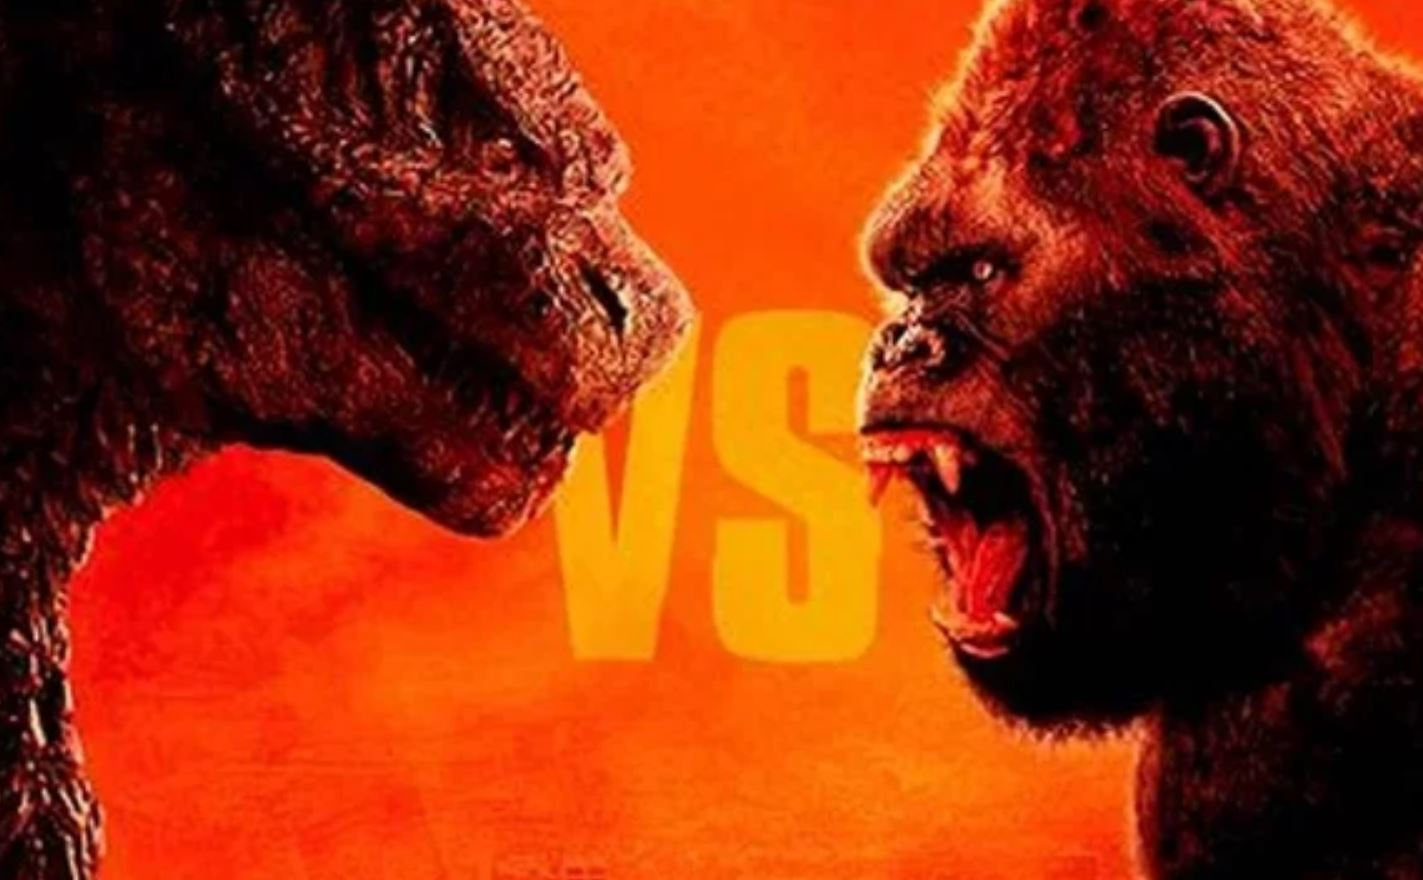 Godzilla Vs. Kong' Release Date May Get Delayed